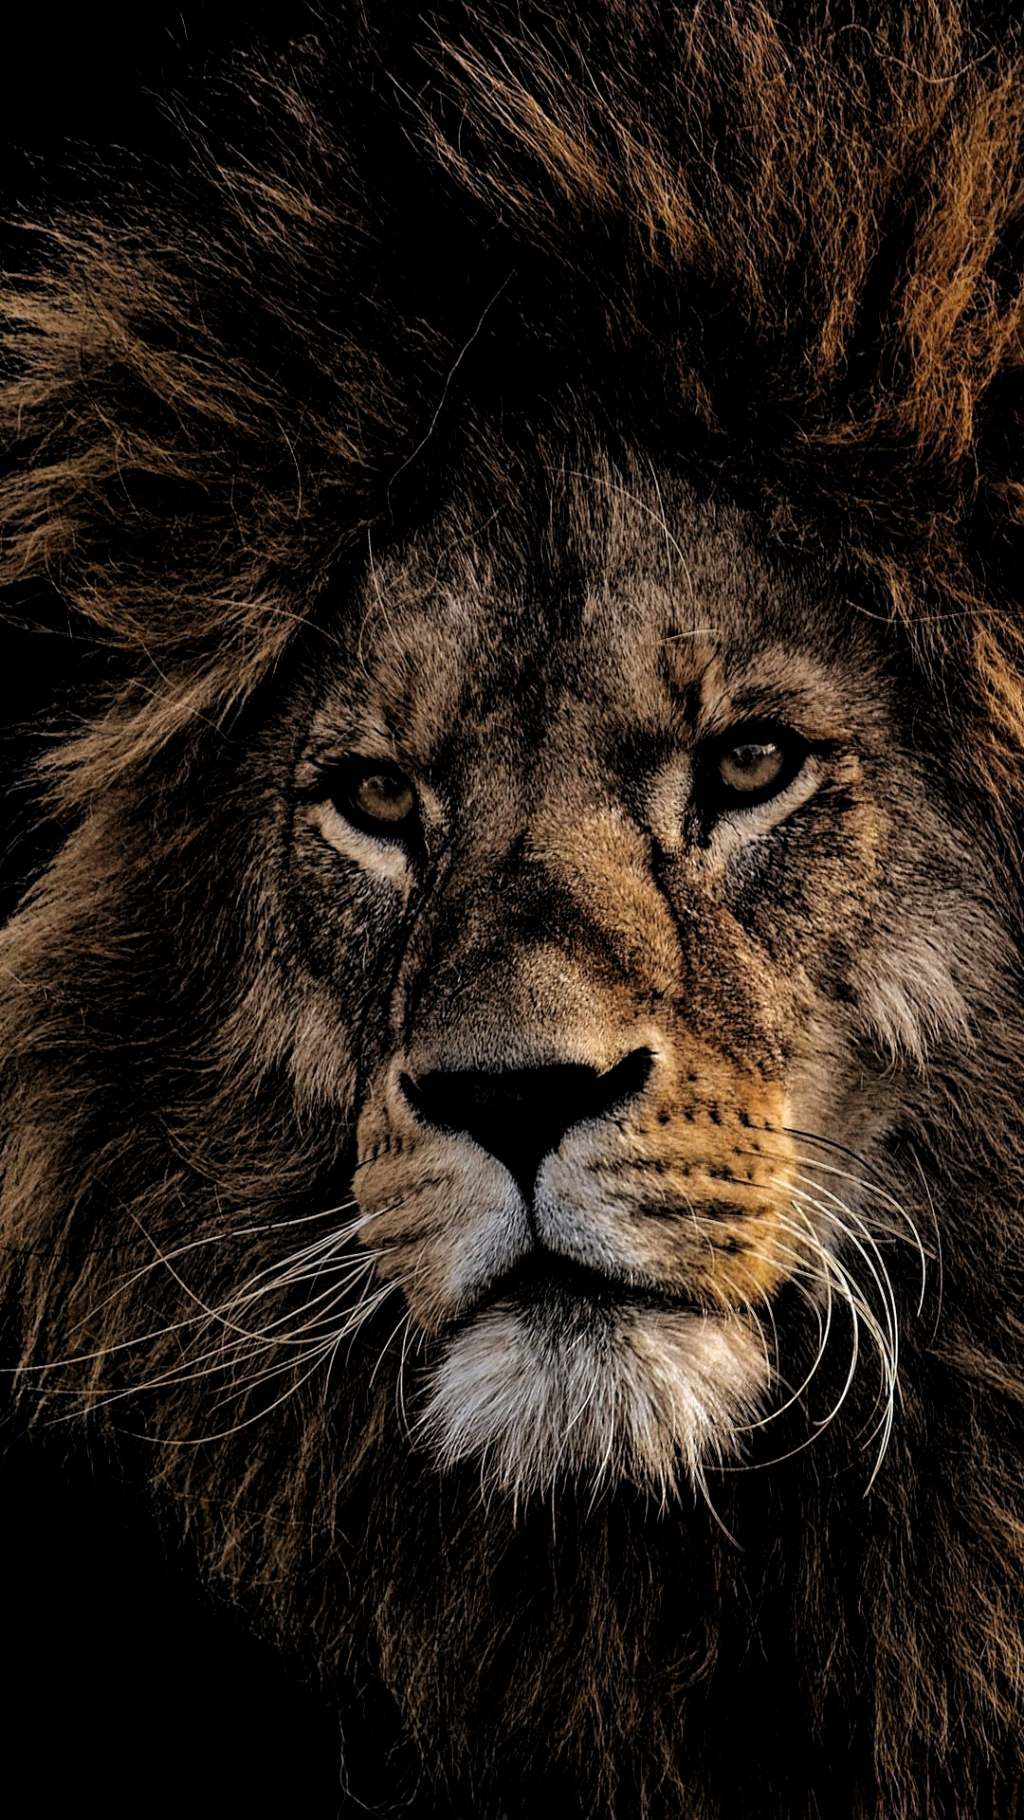 Best 5 Black Lion Wallpapers Background For Your Android Or Iphone Wallpapers Android Iphone Lion Wallpaper Lions Photos Bull Elephant